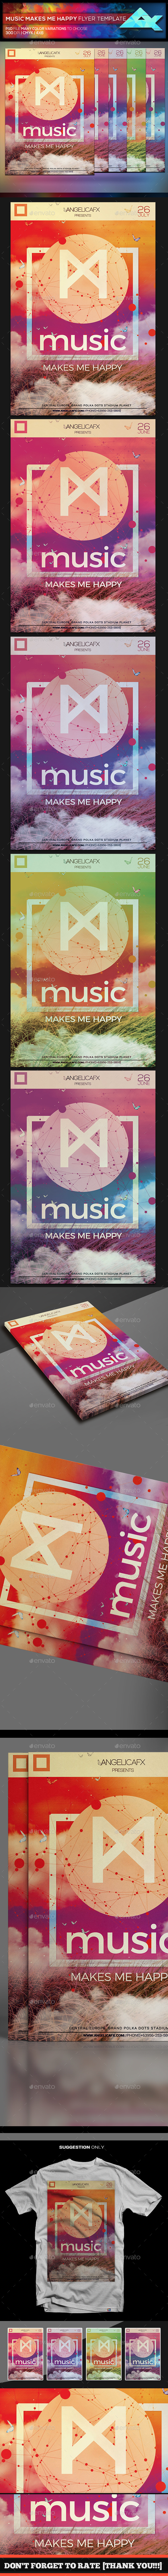 Music Makes Me Happy Flyer Template - Flyers Print Templates